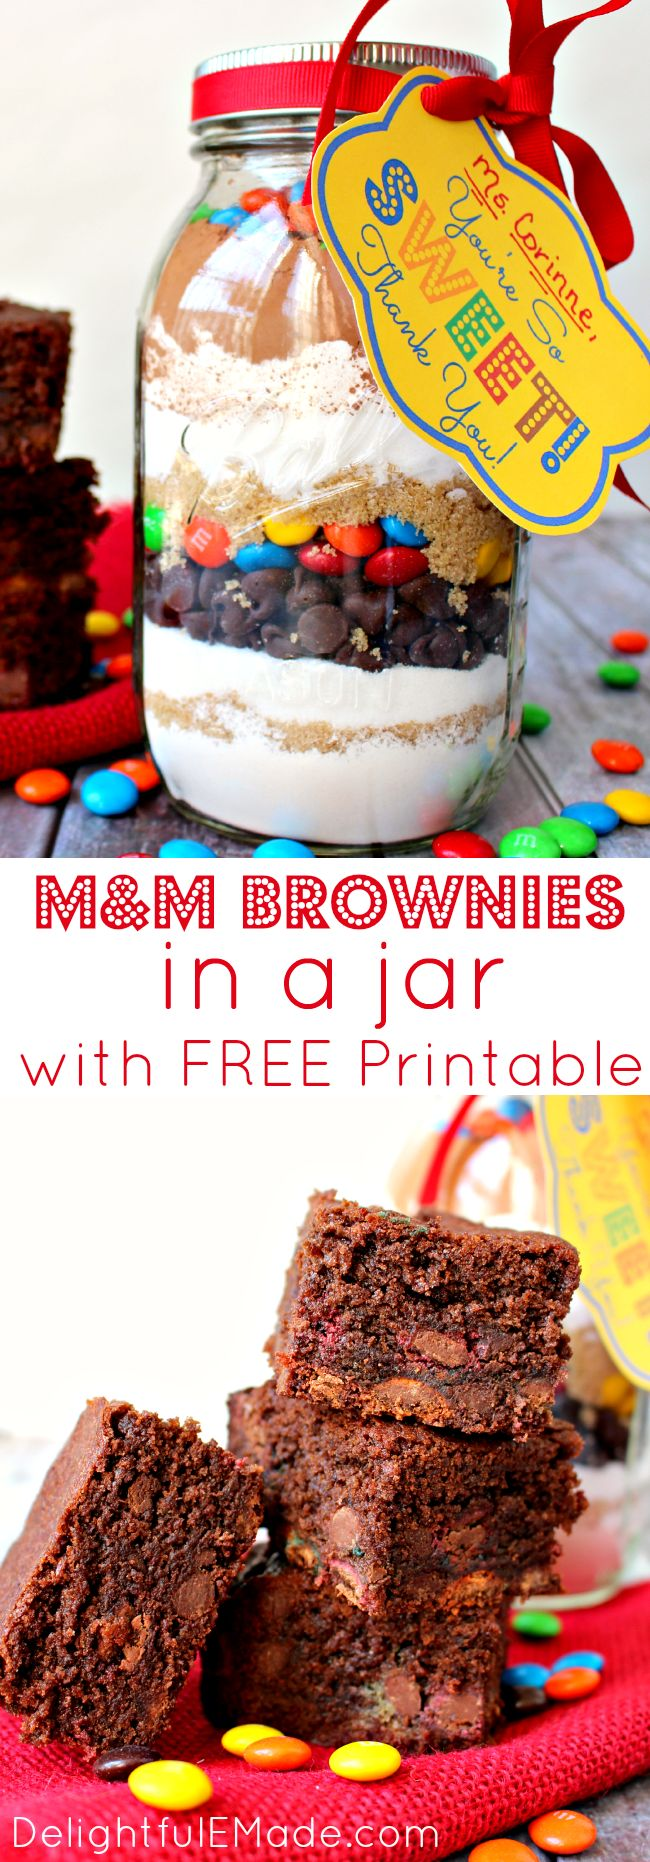 """Everyone loves brownies!! Why not give it as a gift? This easy M&M Brownie mix in a jar is the perfect """"Thank You"""" gift for anyone in your life.  Makes a great teacher appreciation gift!"""